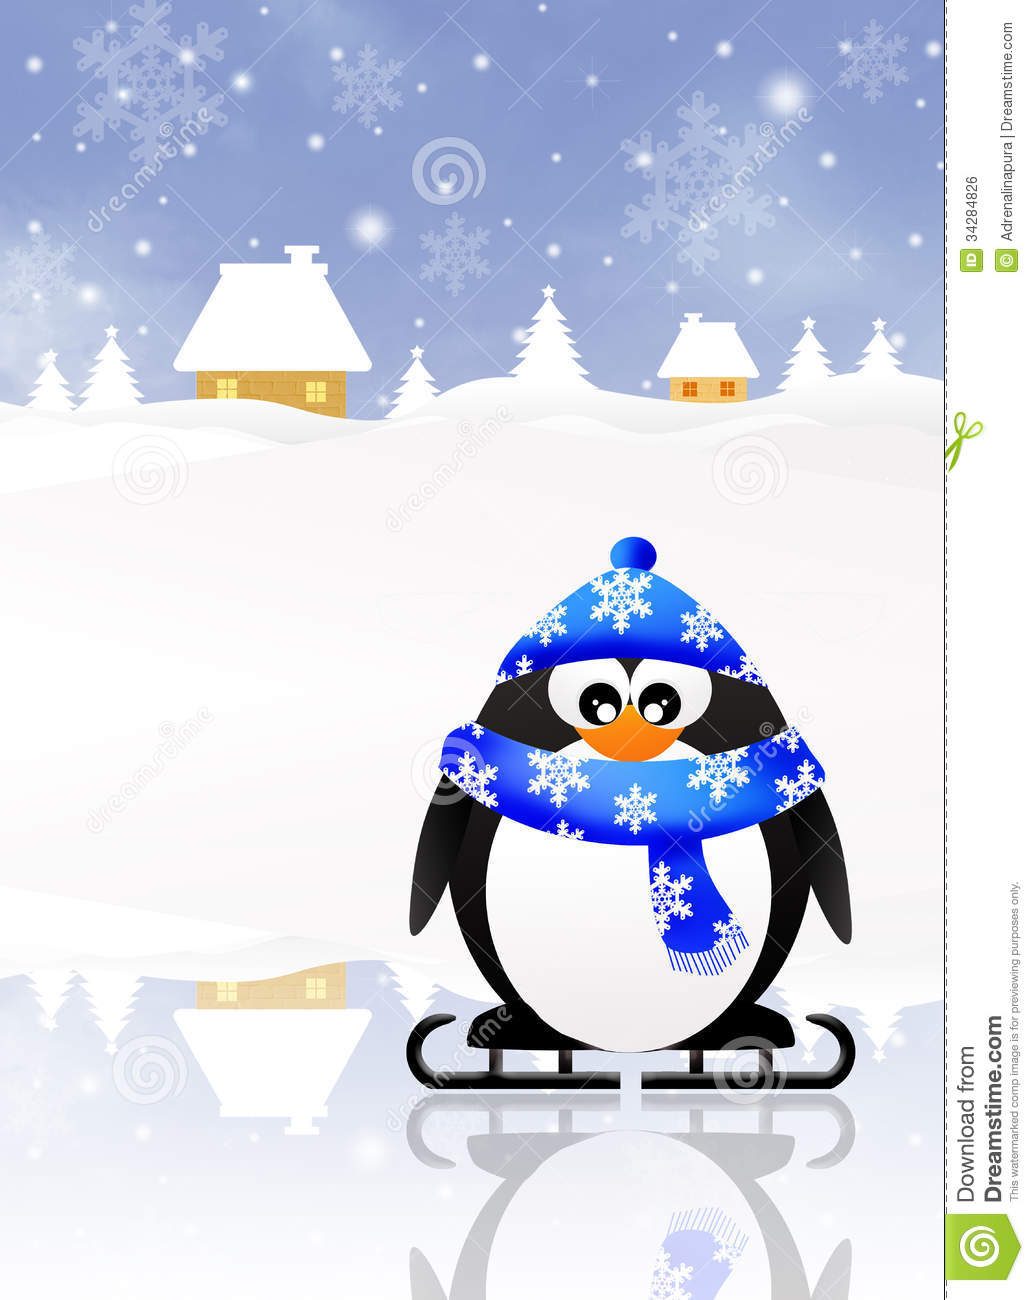 Penguin Cartoon Royalty Free Stock Image - Image: 34284826